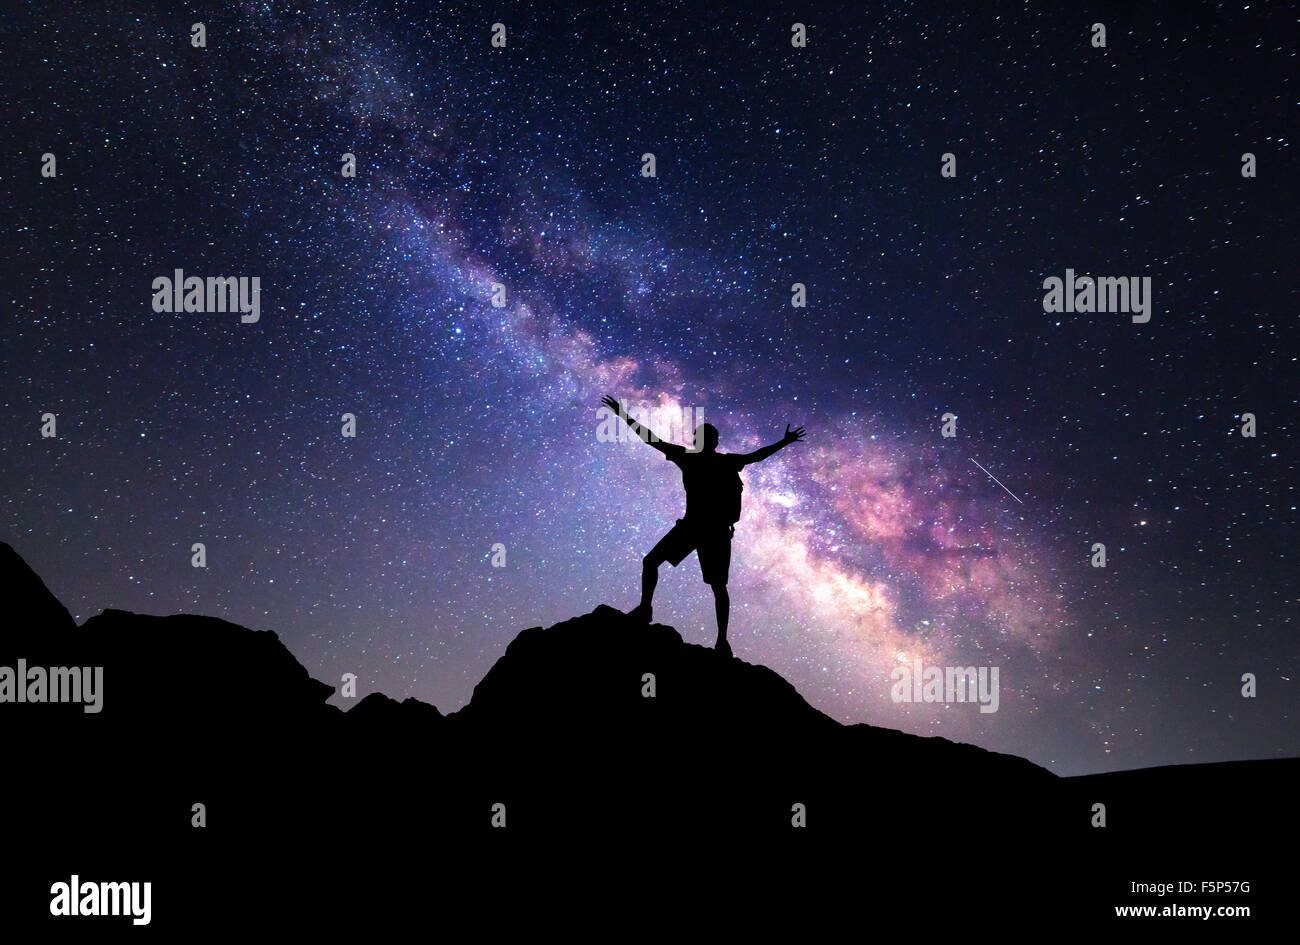 Milky Way. Night sky with stars and silhouette of a man with raised-up arms. - Stock Image